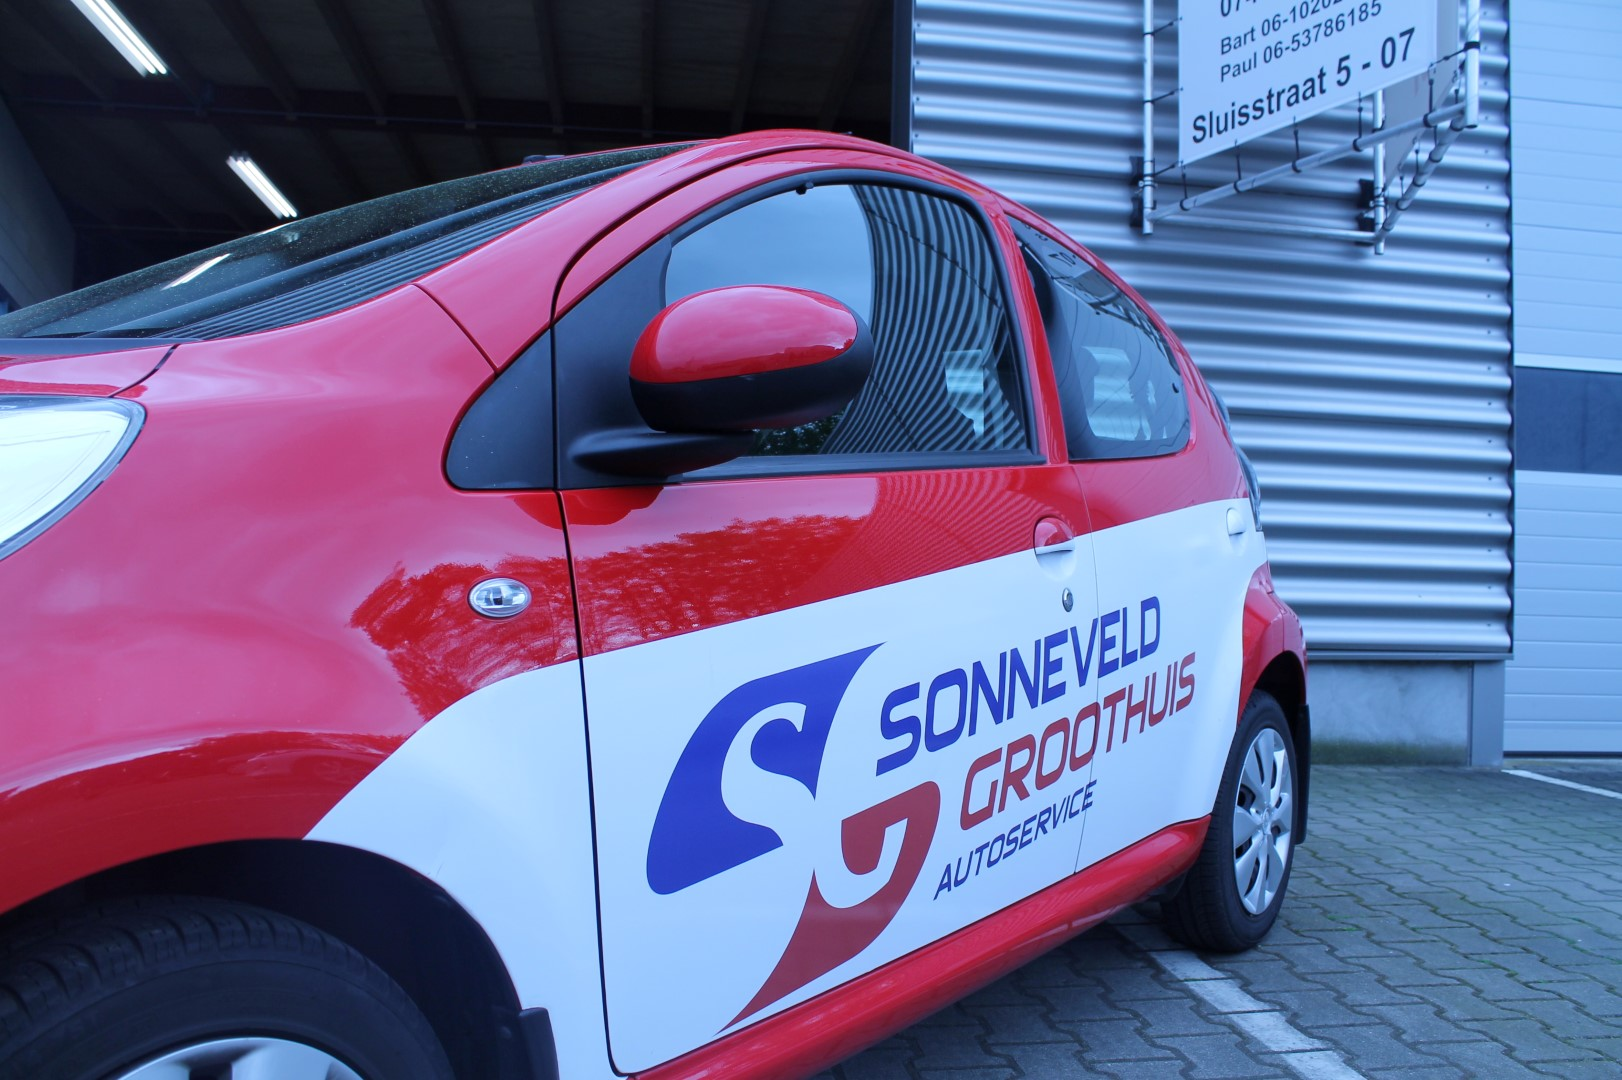 sonneveld-groothuis (23)